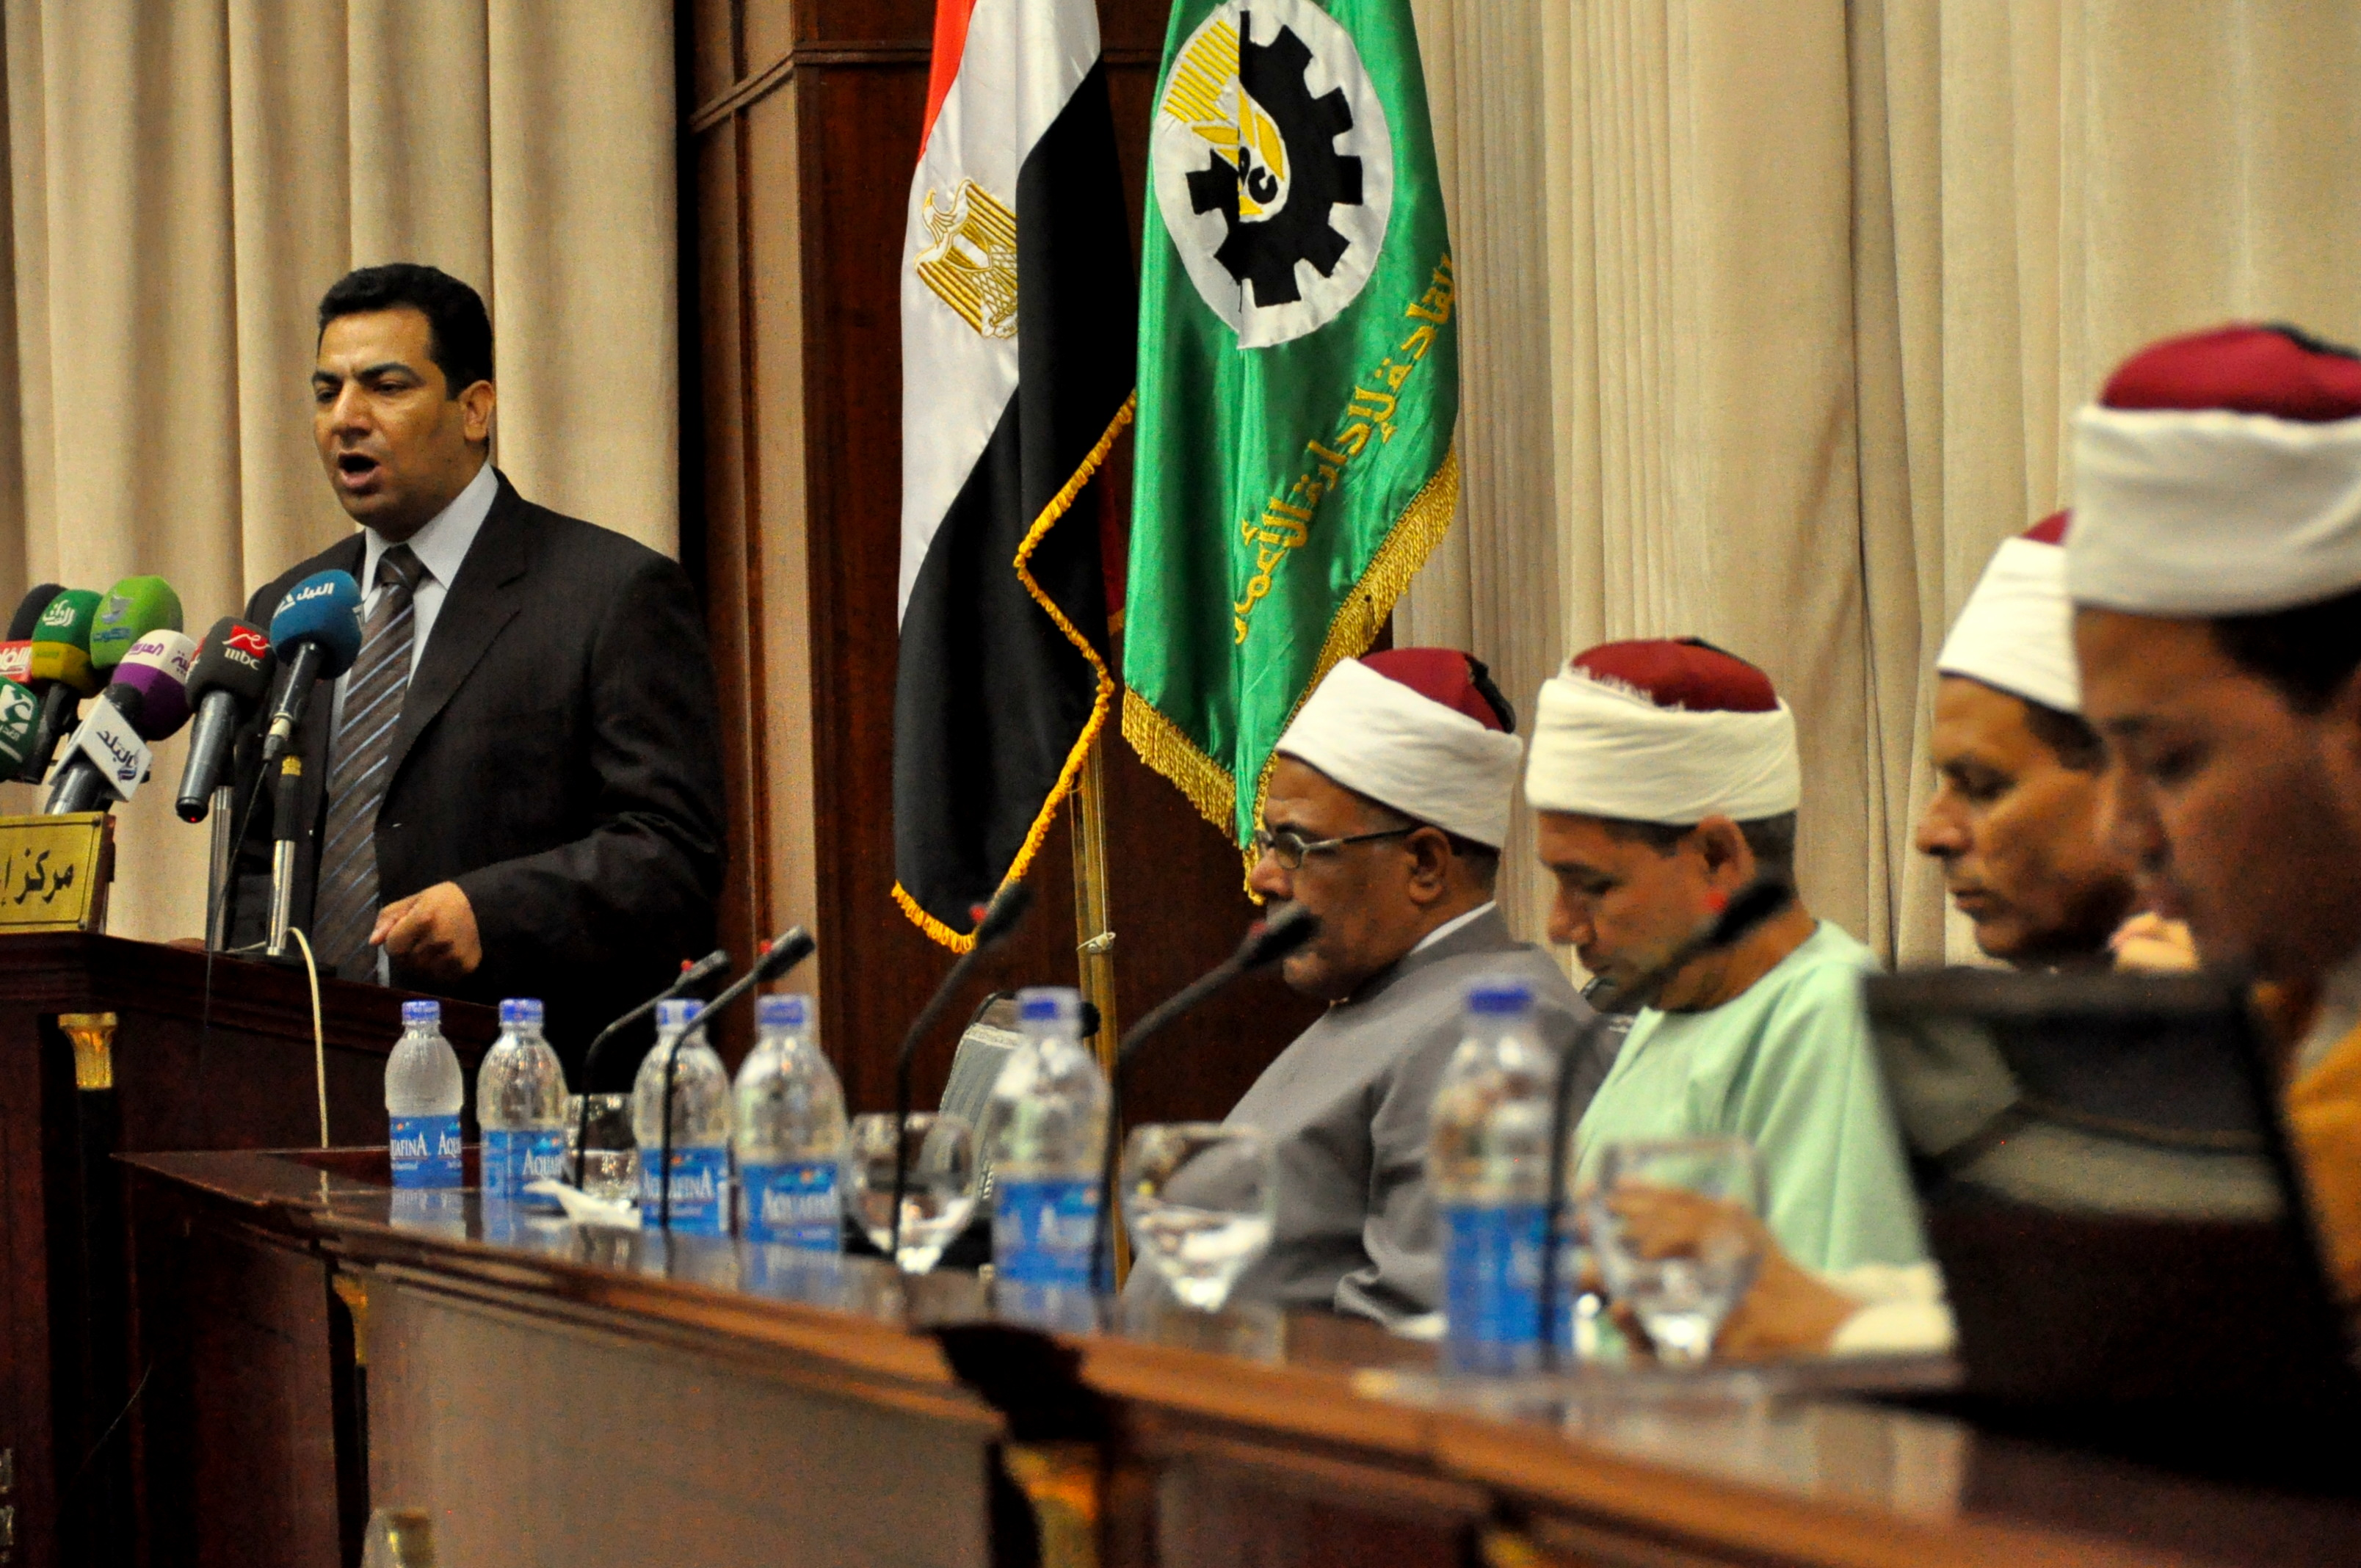 Movements within Al-Azhar call for its independence from the Ministry of Endowments (Photo by Aaron T Rose)